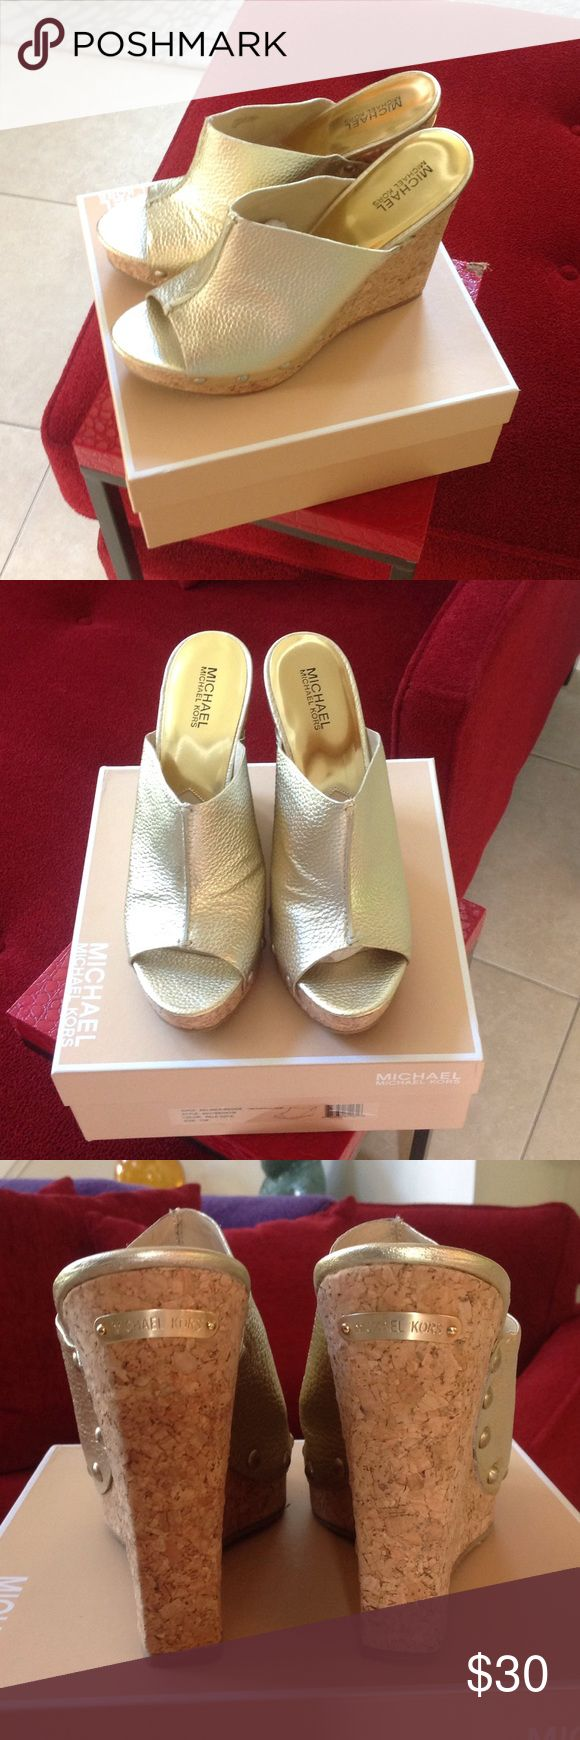 Gold MICHAEL Michael Kors wedge heels Never worn NEW gold wedge heels from the MICHAEL Michael Kors line MICHAEL Michael Kors Shoes Wedges